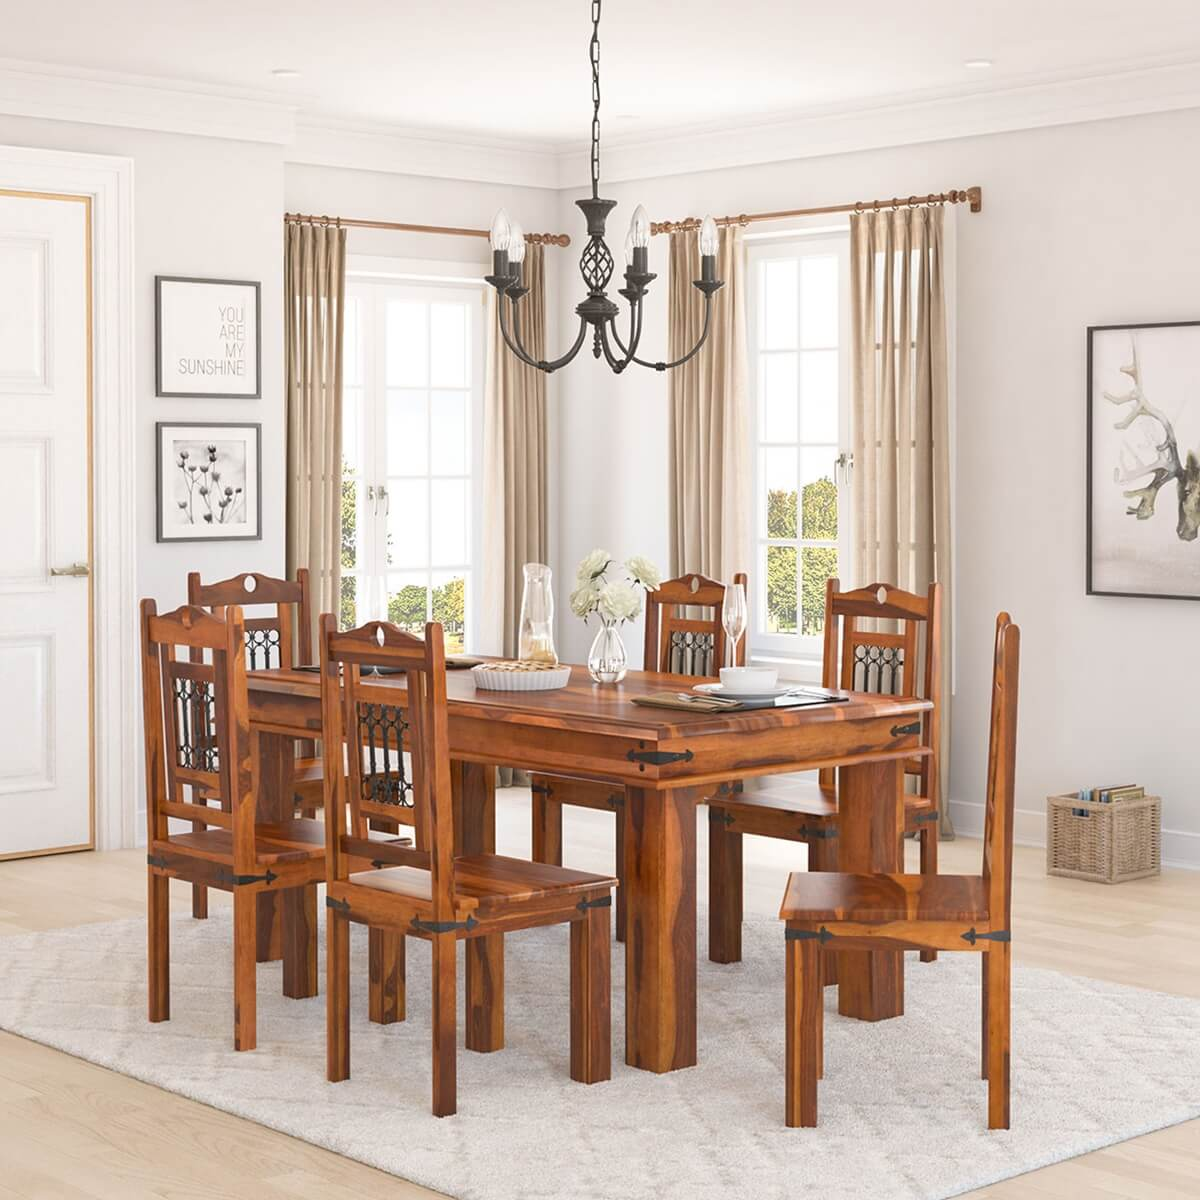 Transitional Dining Room Table: Philadelphia Classic 7pc Transitional Dining Room Table